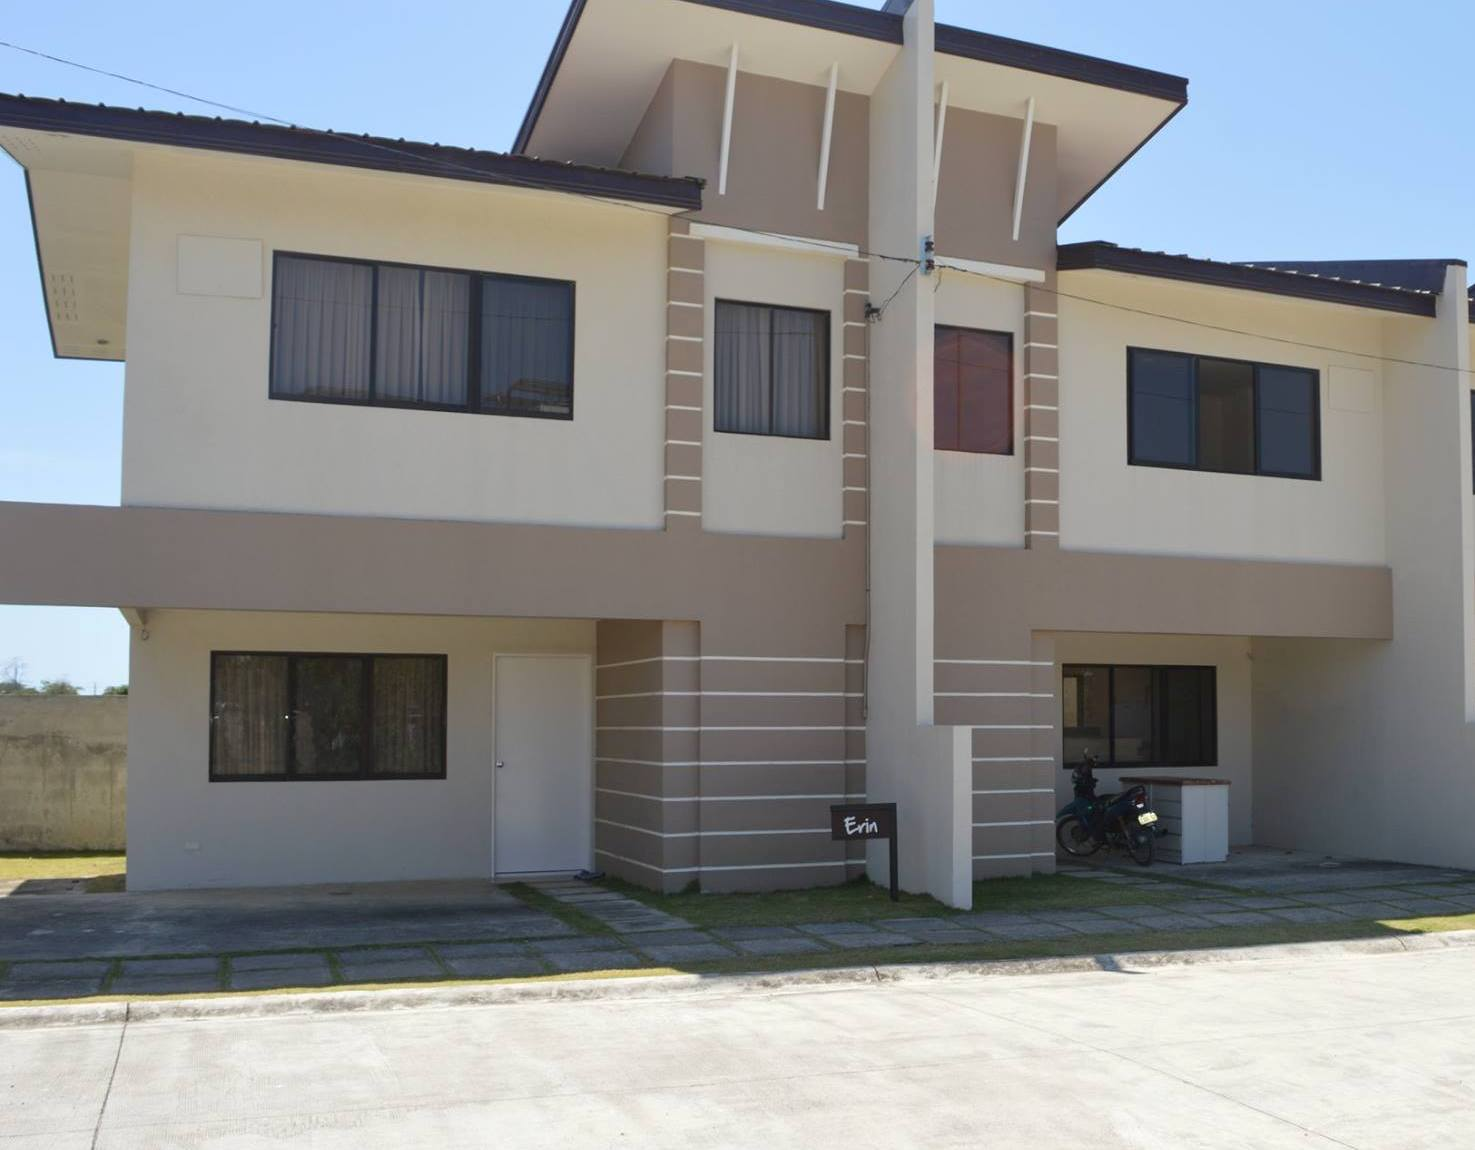 Mactan plains erin model 2storey duplex type cebu for Duplex building prices